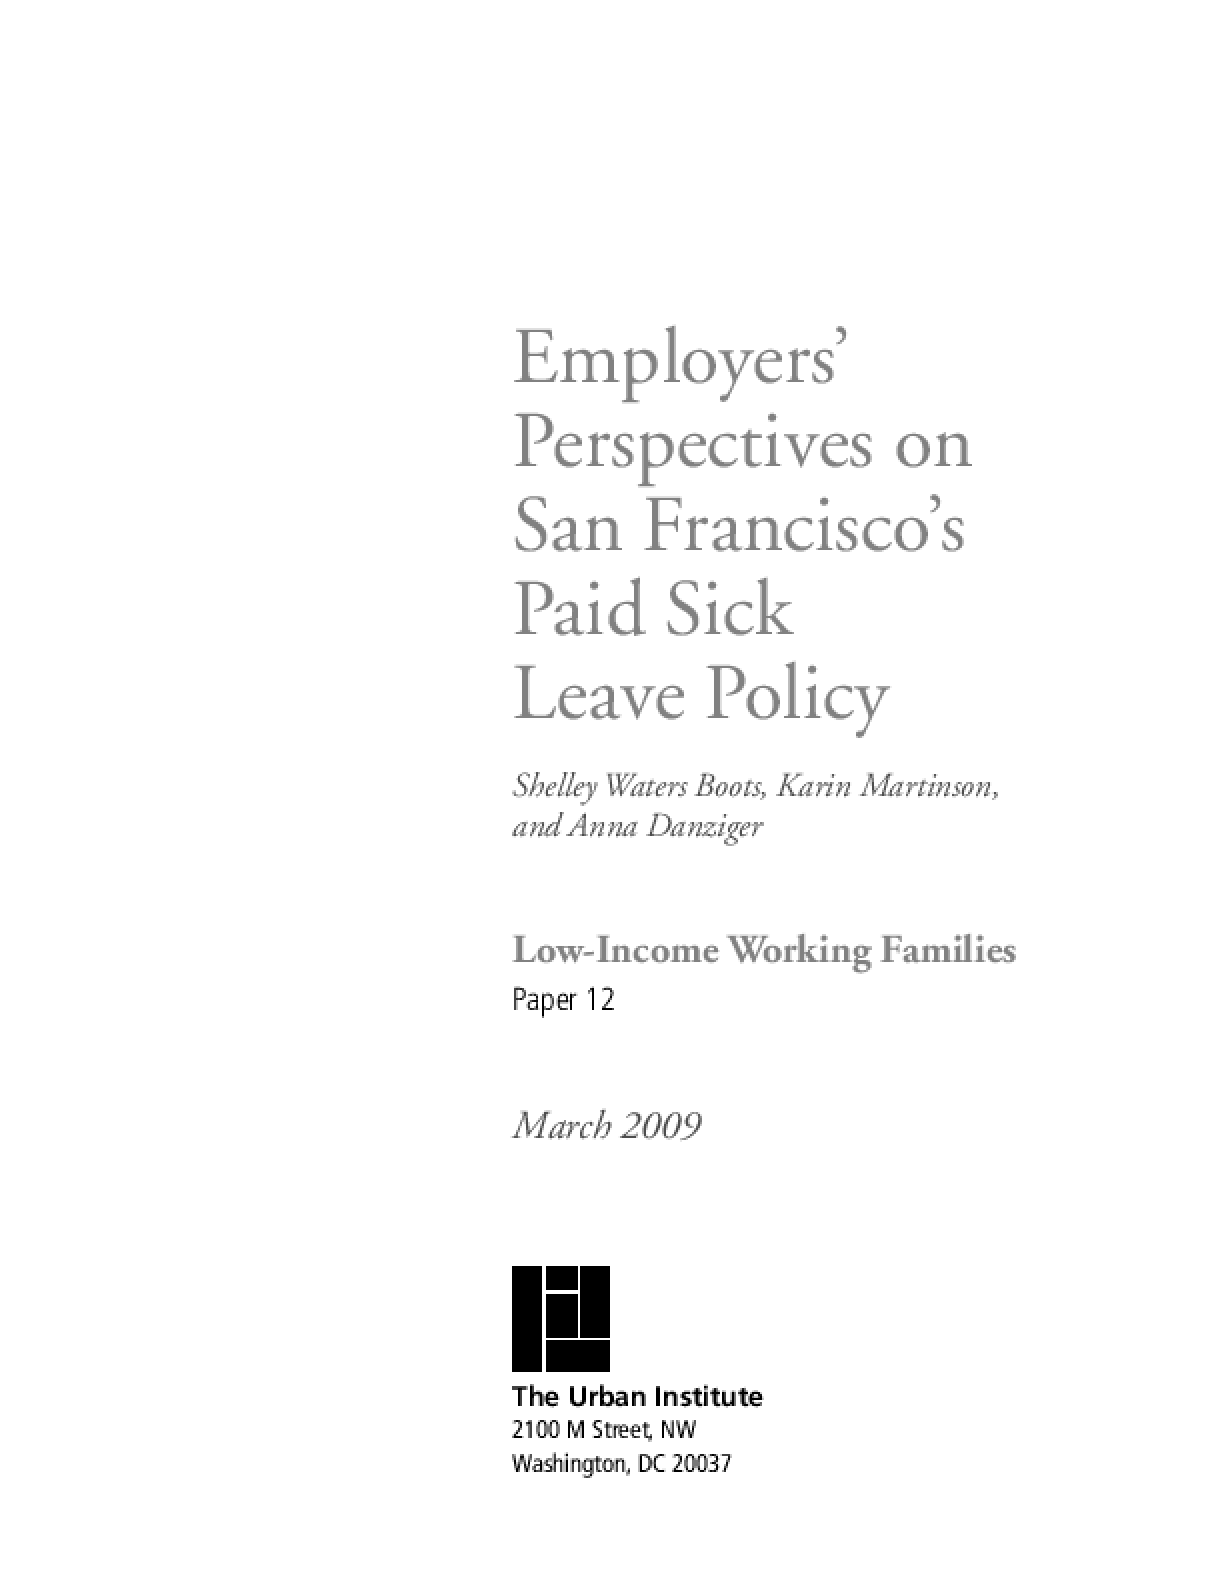 Employers' Perspectives on San Francisco's Paid Sick Leave Policy